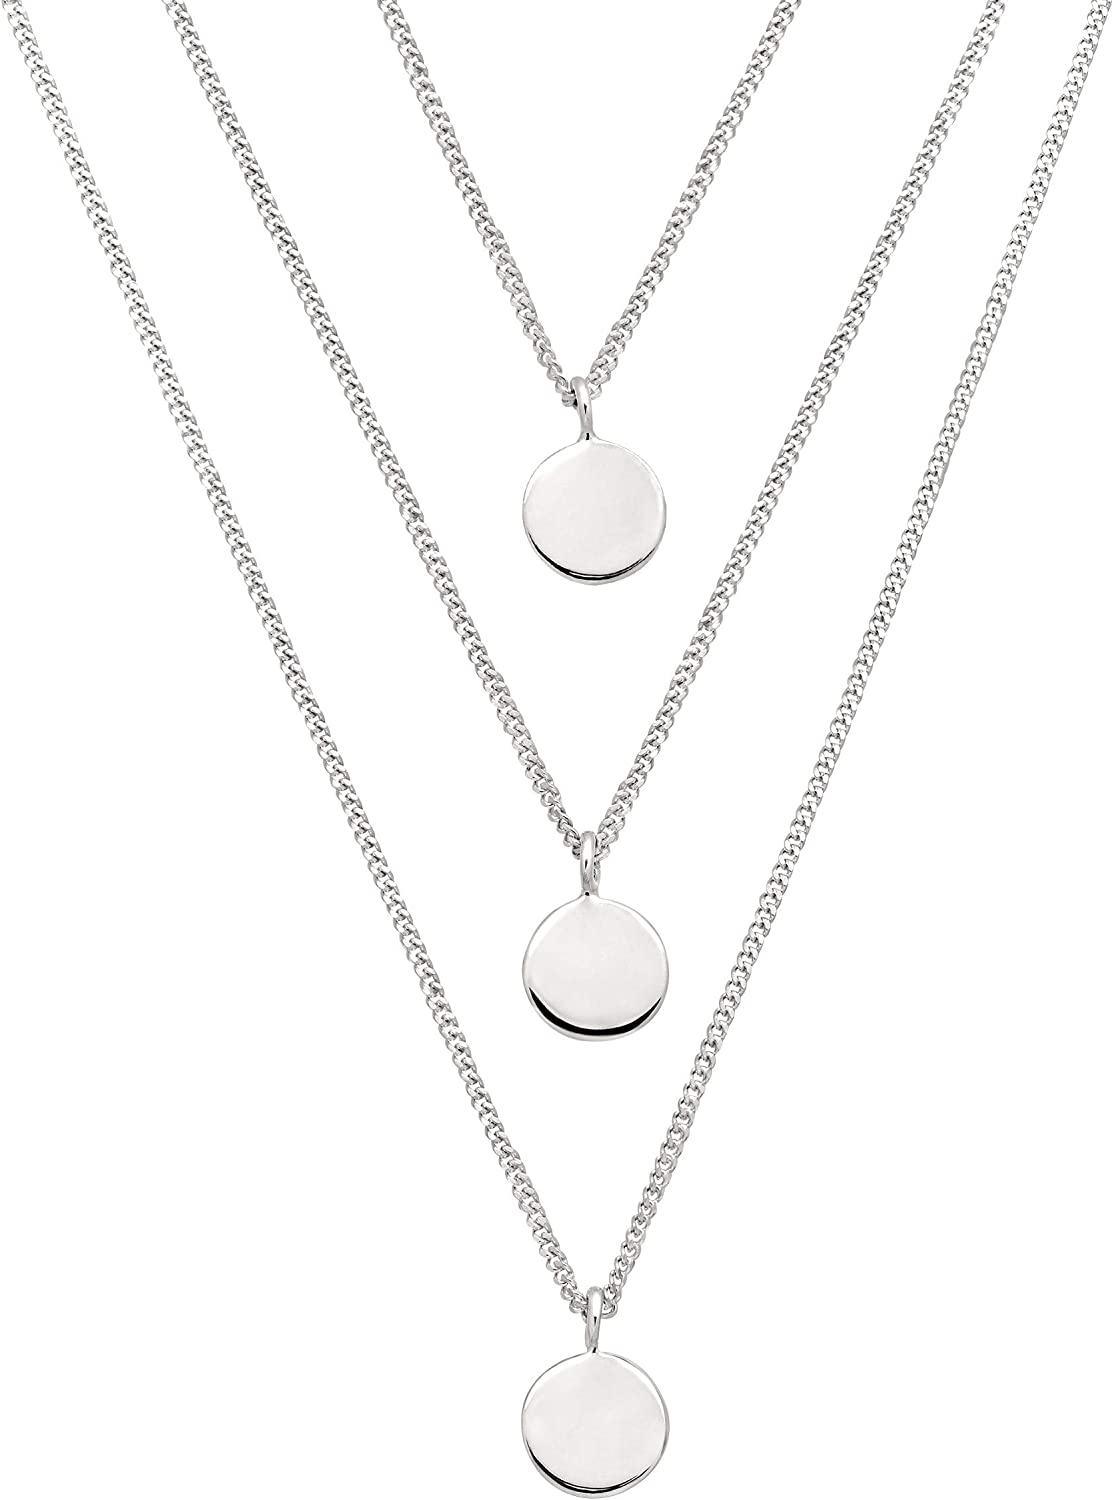 2 CZ Circle Discs Station Necklace Sterling Silver 16